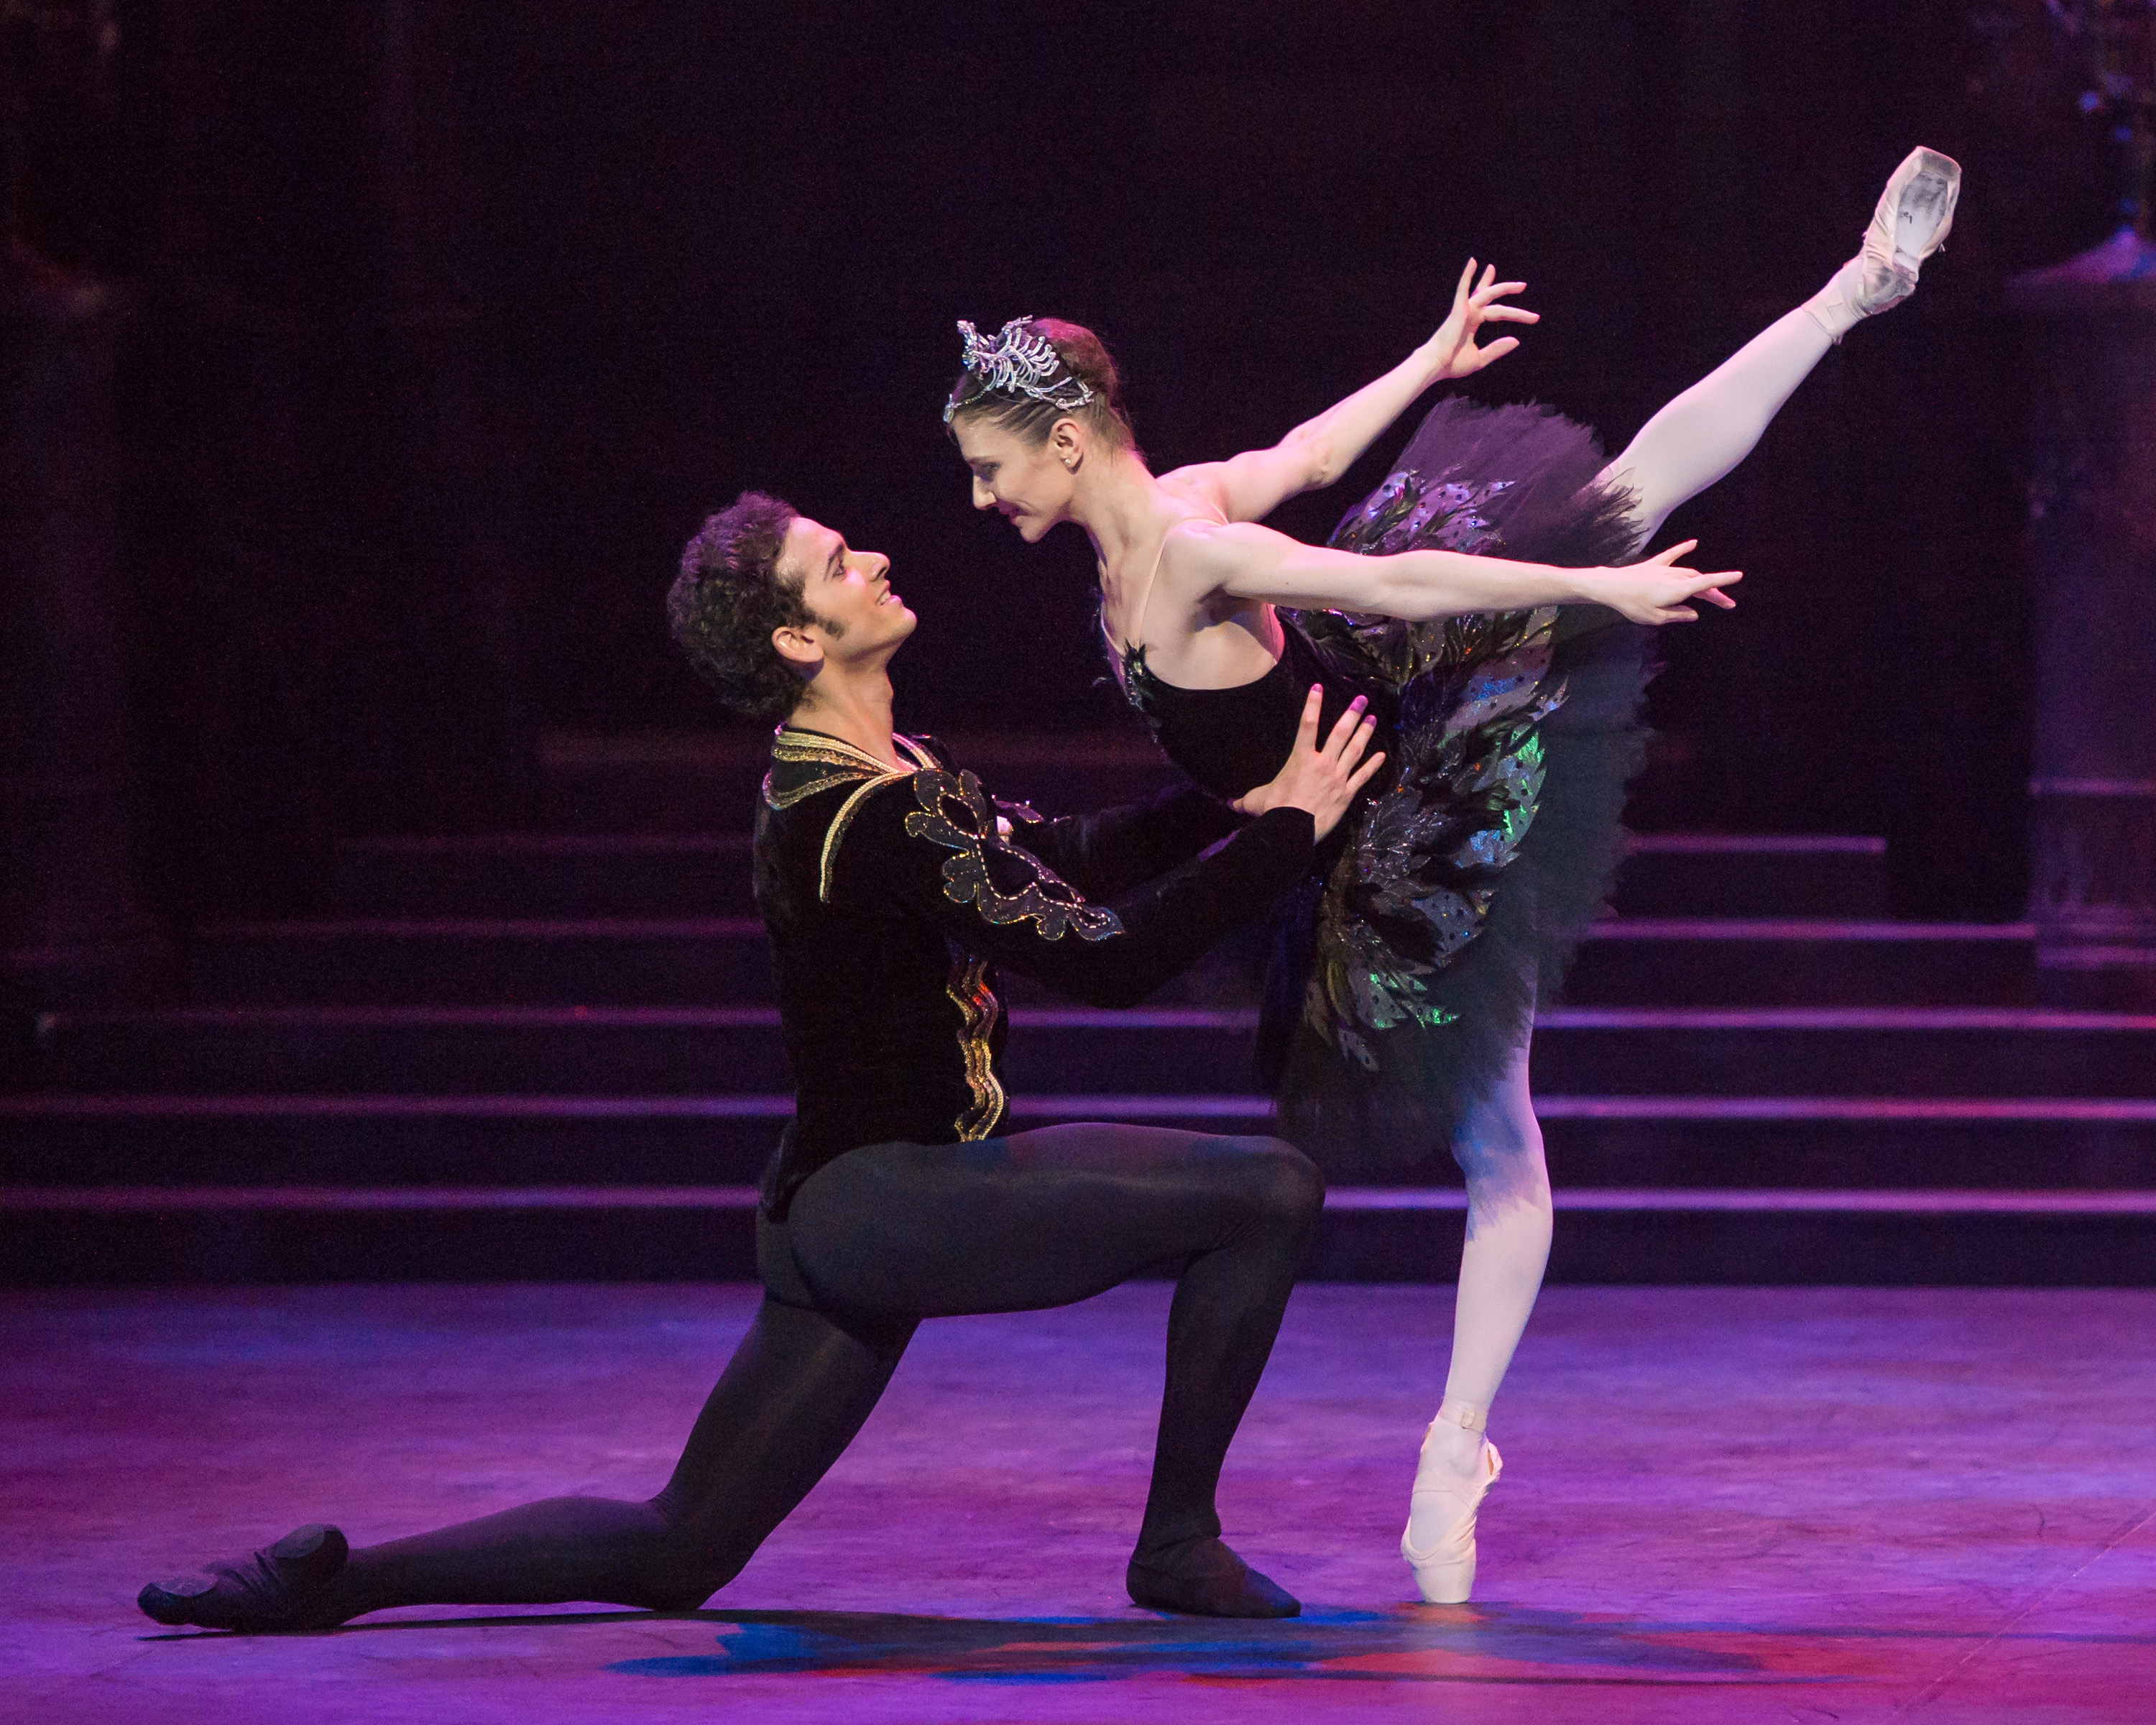 Alina Cojocaru and Alejandro Virelles in English National Ballet's 'Swan Lake' (Photography by ASH)